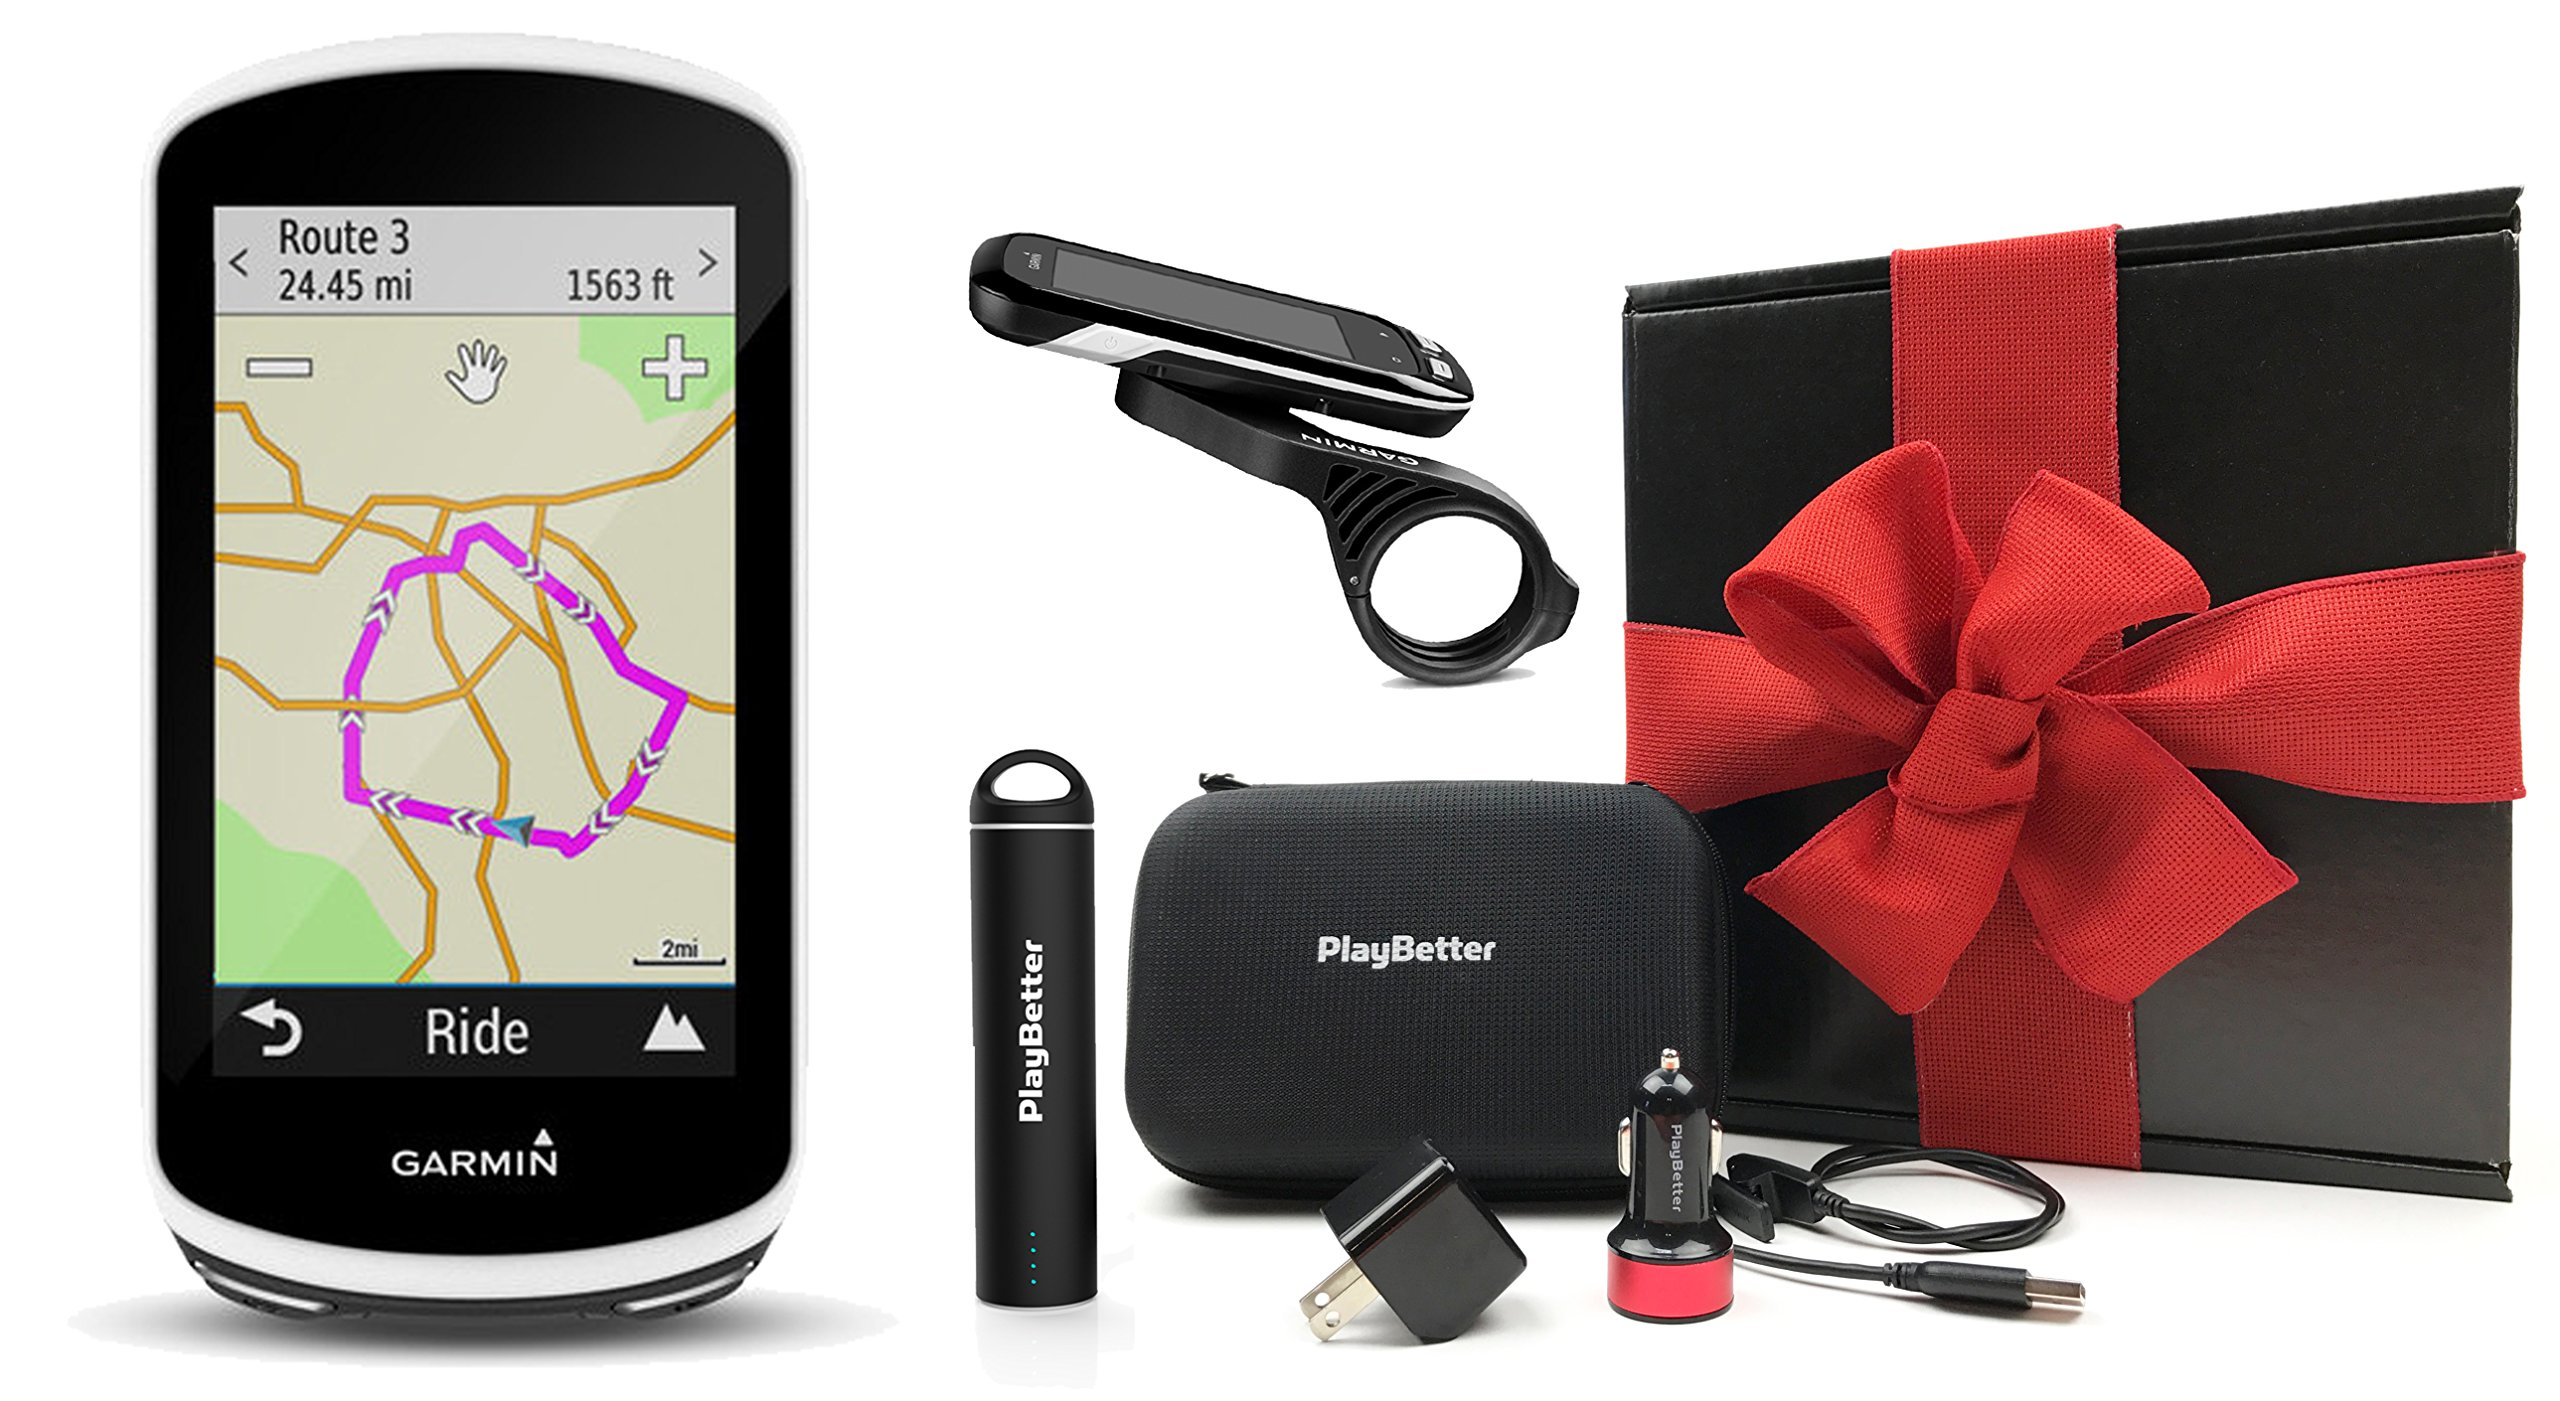 Garmin Edge 1030 Gift Box Bundle | with PlayBetter Portable Lipstick Charger, PlayBetter Car/Wall Adapters, Hard Case, Bike Mounts | GPS Bike Computer, Navigation | Gift Box, Red Bow